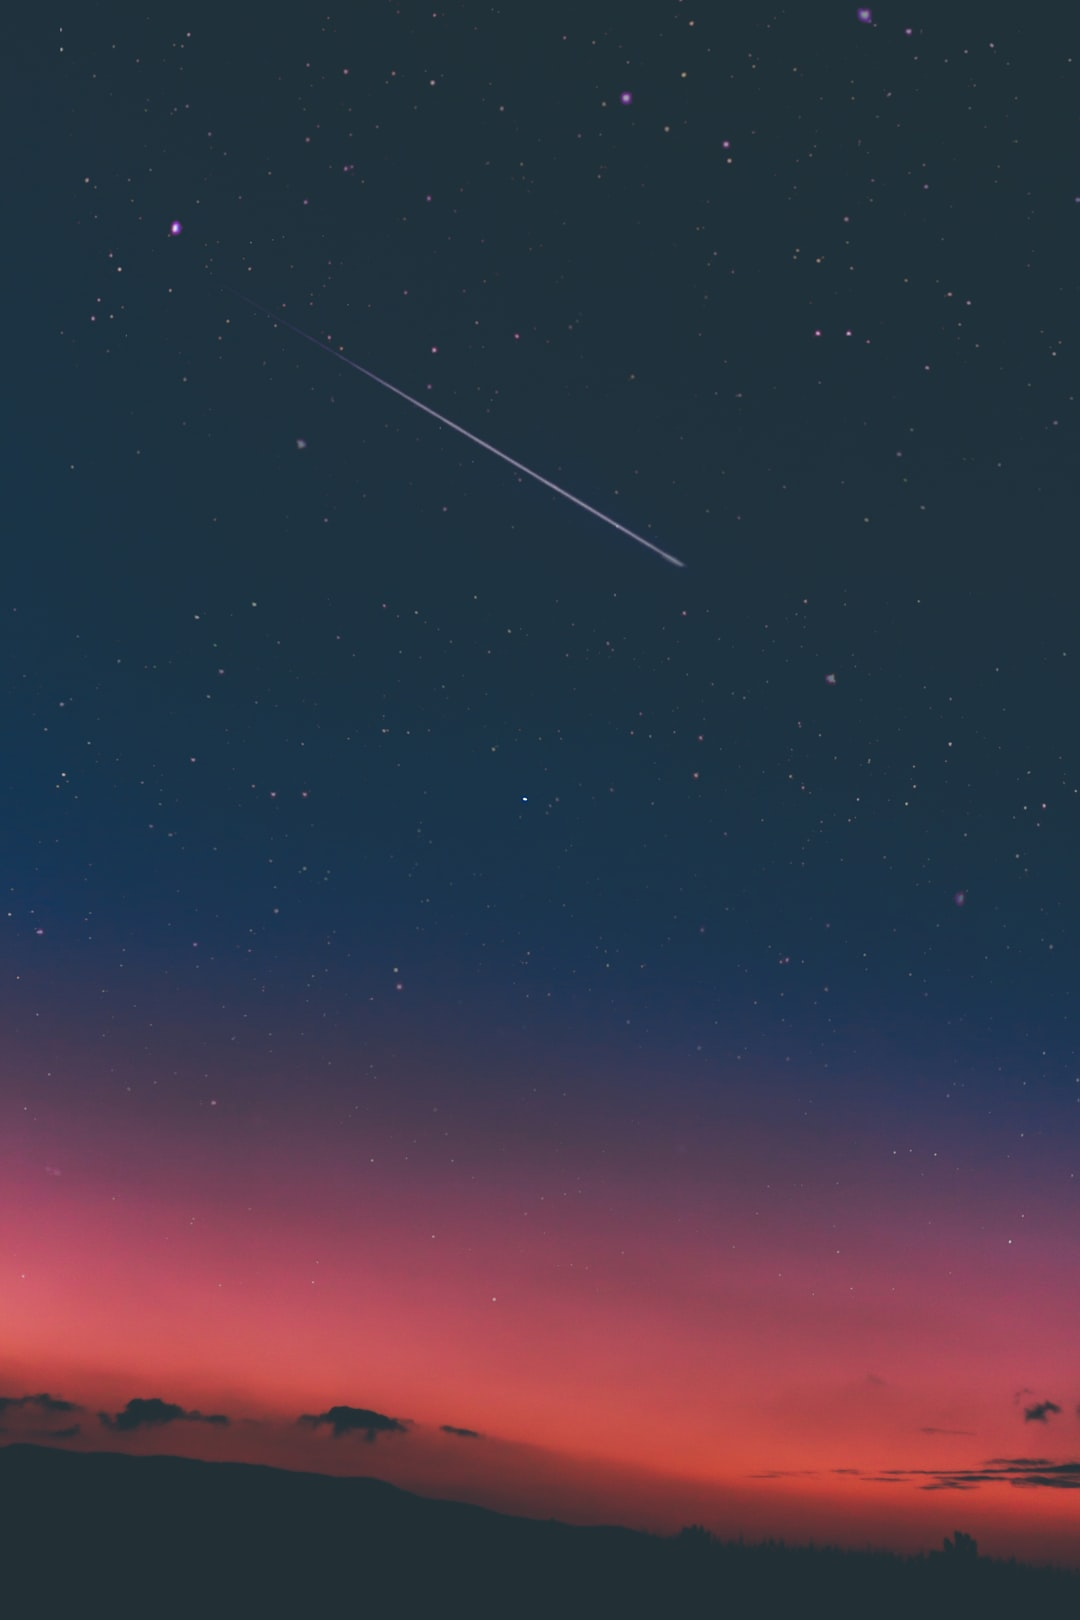 100+ Shooting Star Pictures | Download Free Images on Unsplash